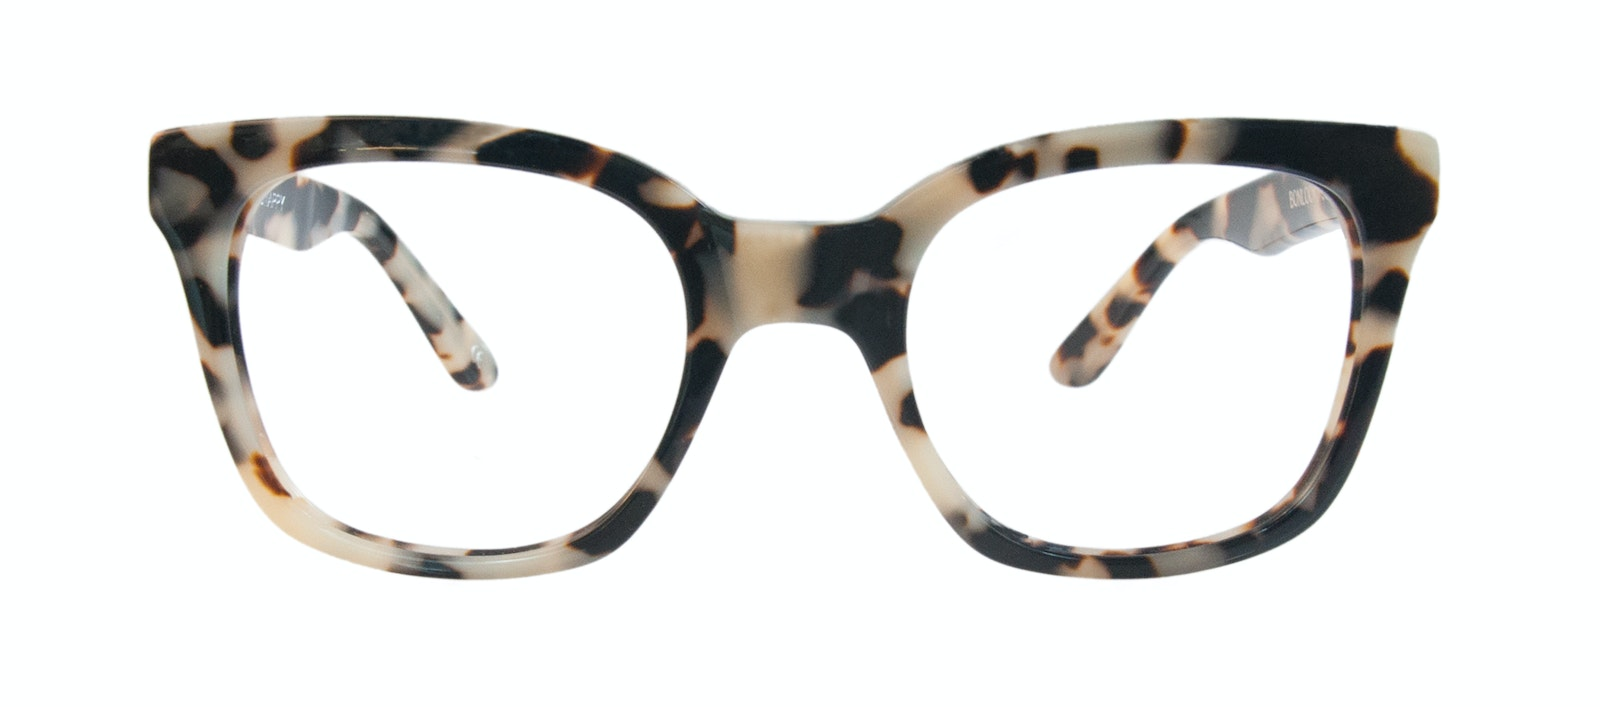 5cedcaf37d Jack   Norma. Previous. Affordable Fashion Glasses Rectangle Square  Eyeglasses Women ...